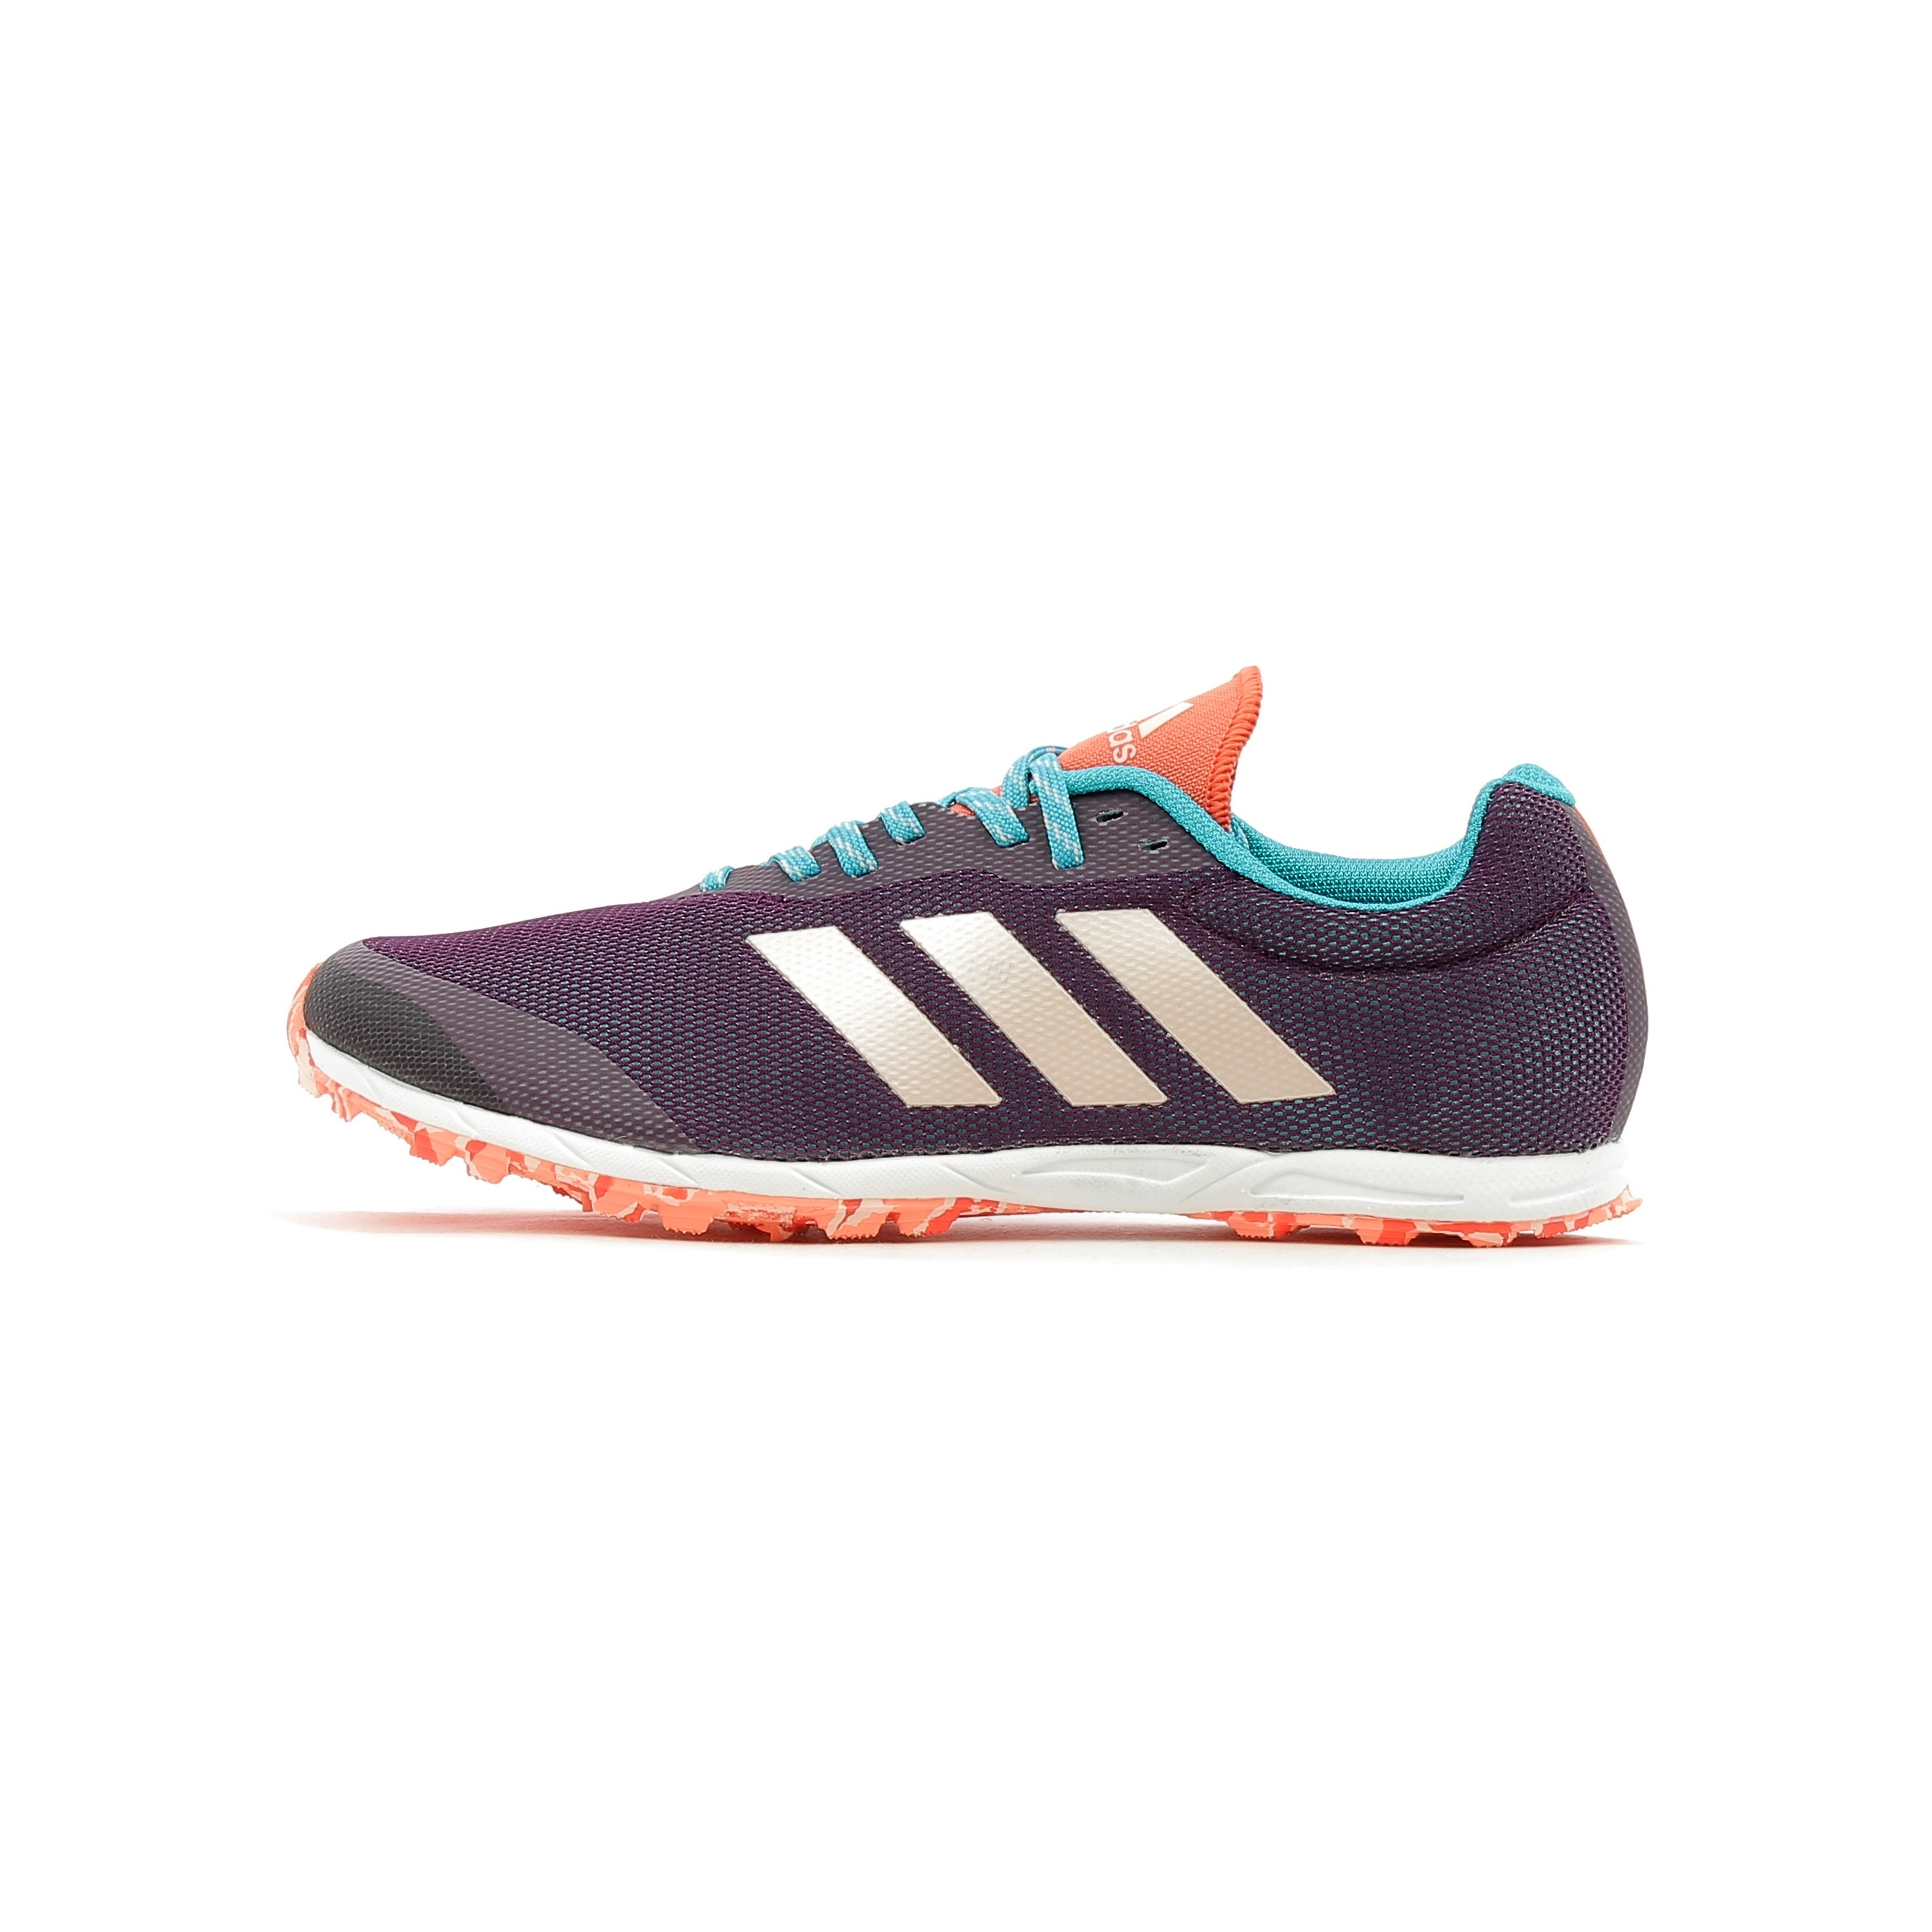 Chaussures Adidas W De Performance Xcs Spikeless Running Fl1JcK